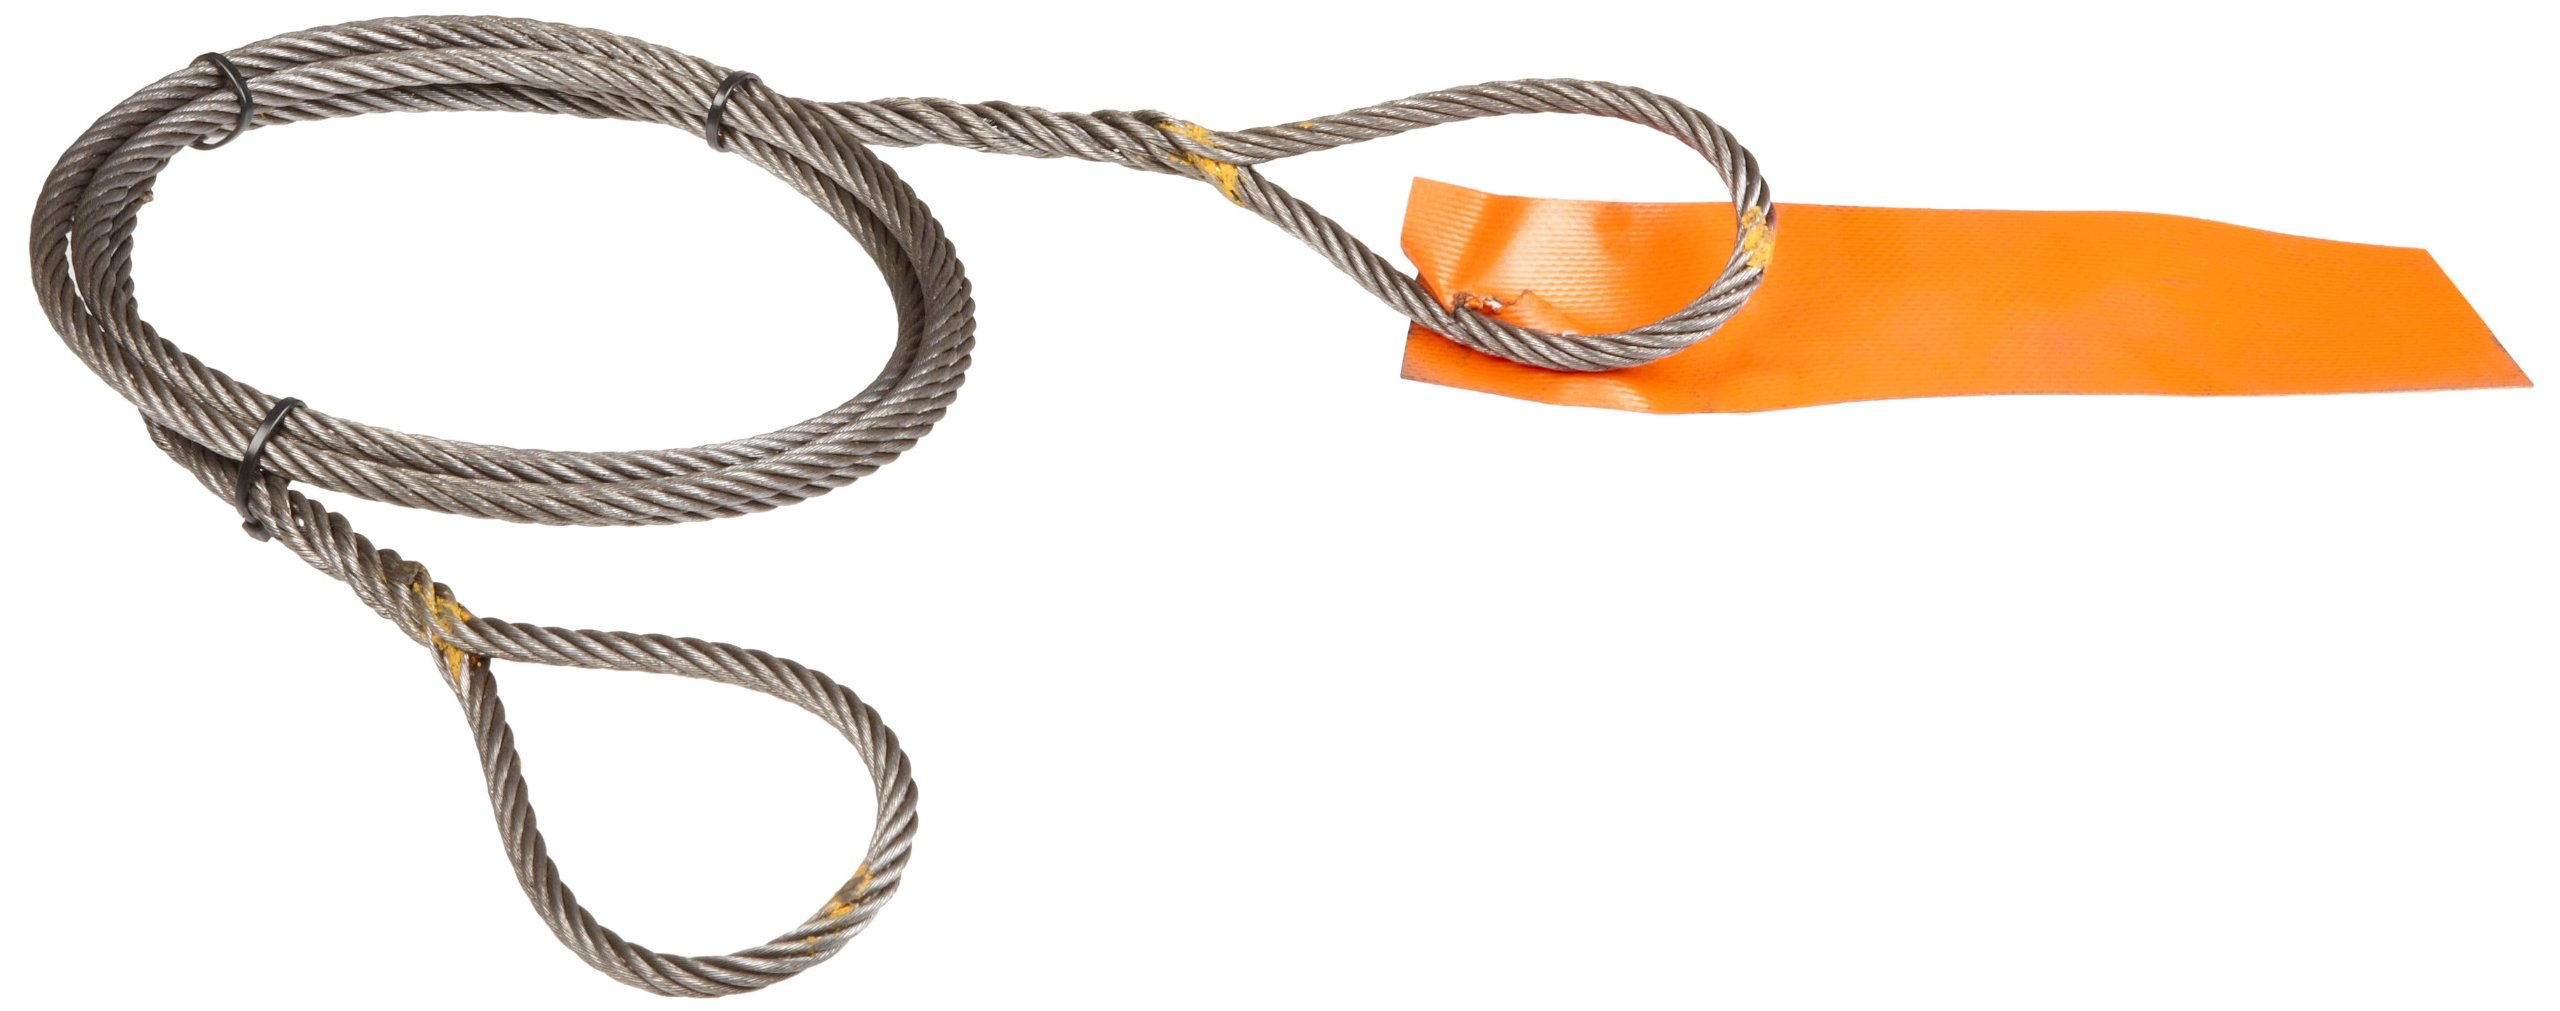 """Mazzella Hand Taper and Concealed Wire Rope Sling, Eye-and-Eye, 6 x 37 Fiber Core, 4' Length, 3/8"""" Diameter, 6"""" Eyes, 2400 lbs Vertical Load Capacity"""